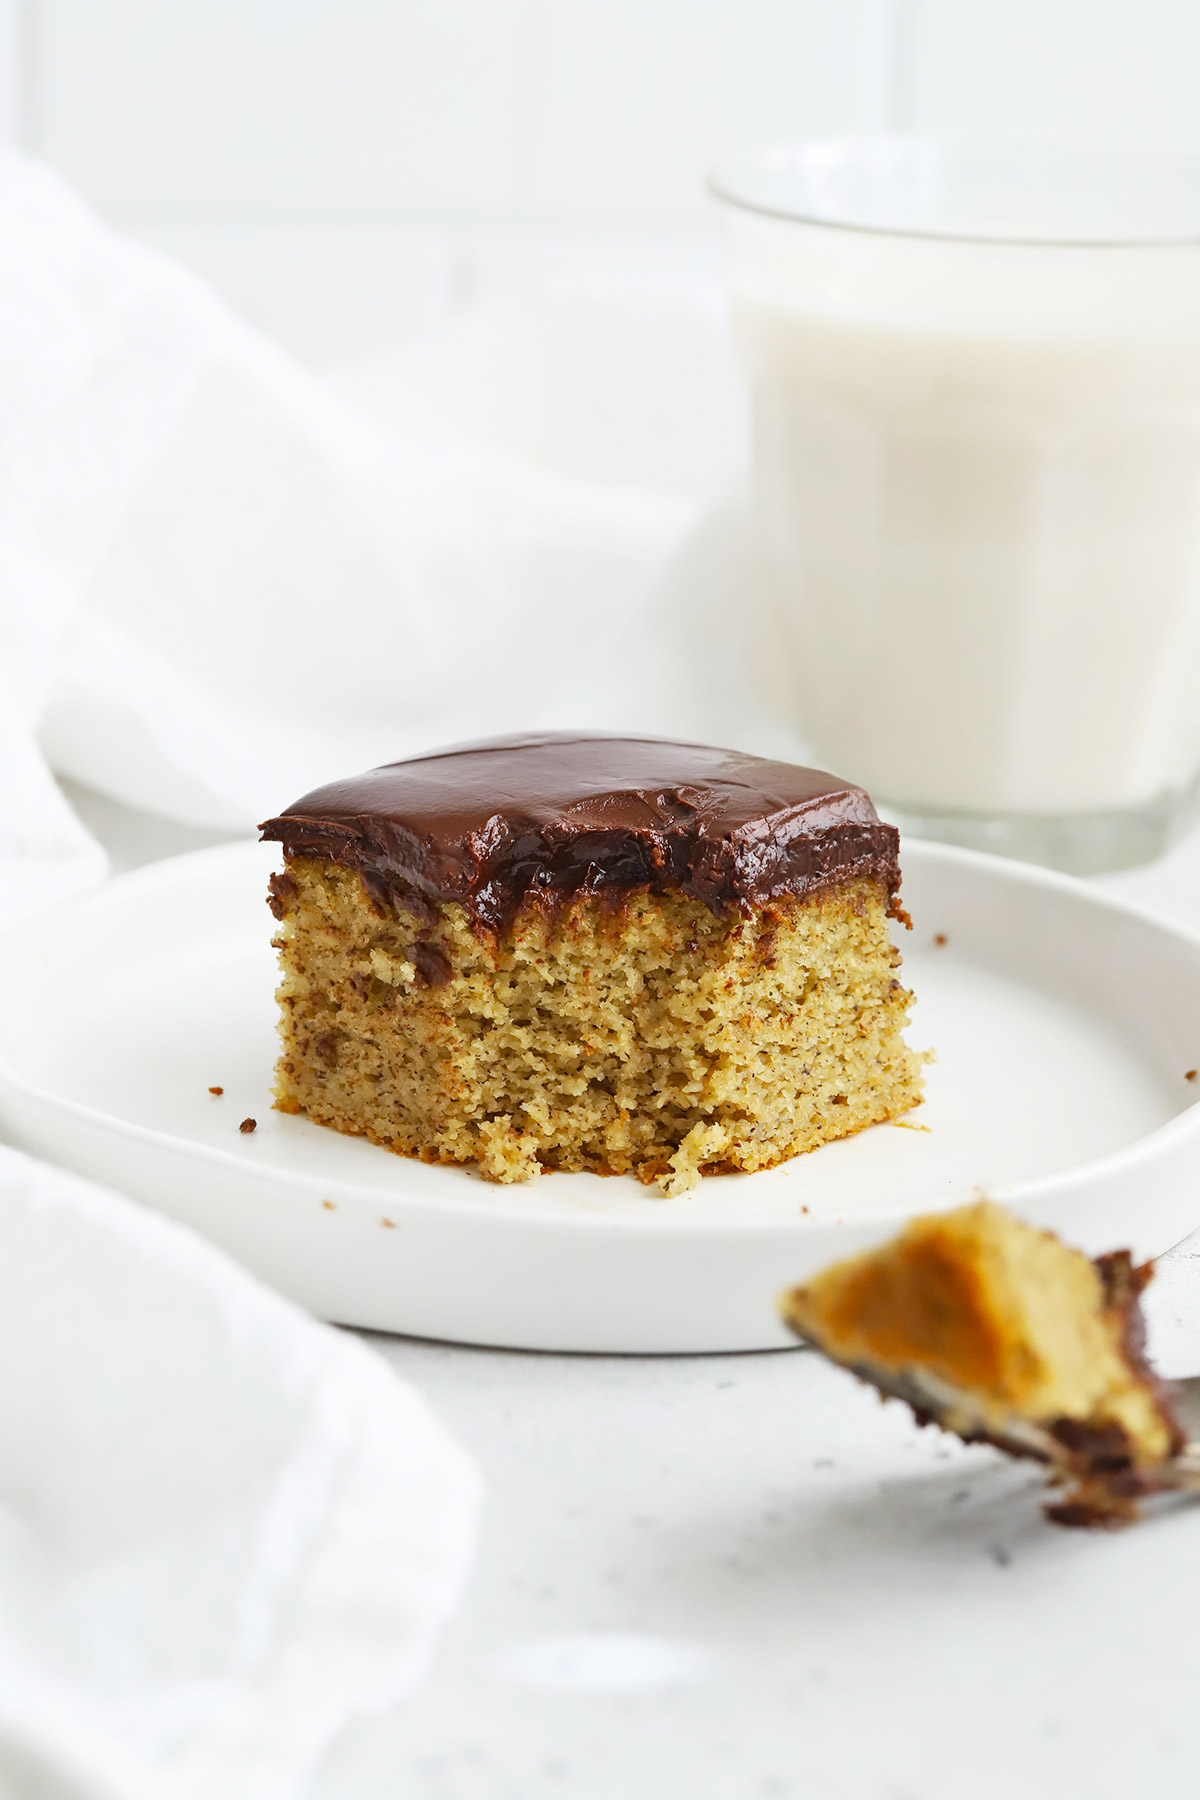 Front view of a slice of almond flour banana cake on a white plate with a bite taken out of it